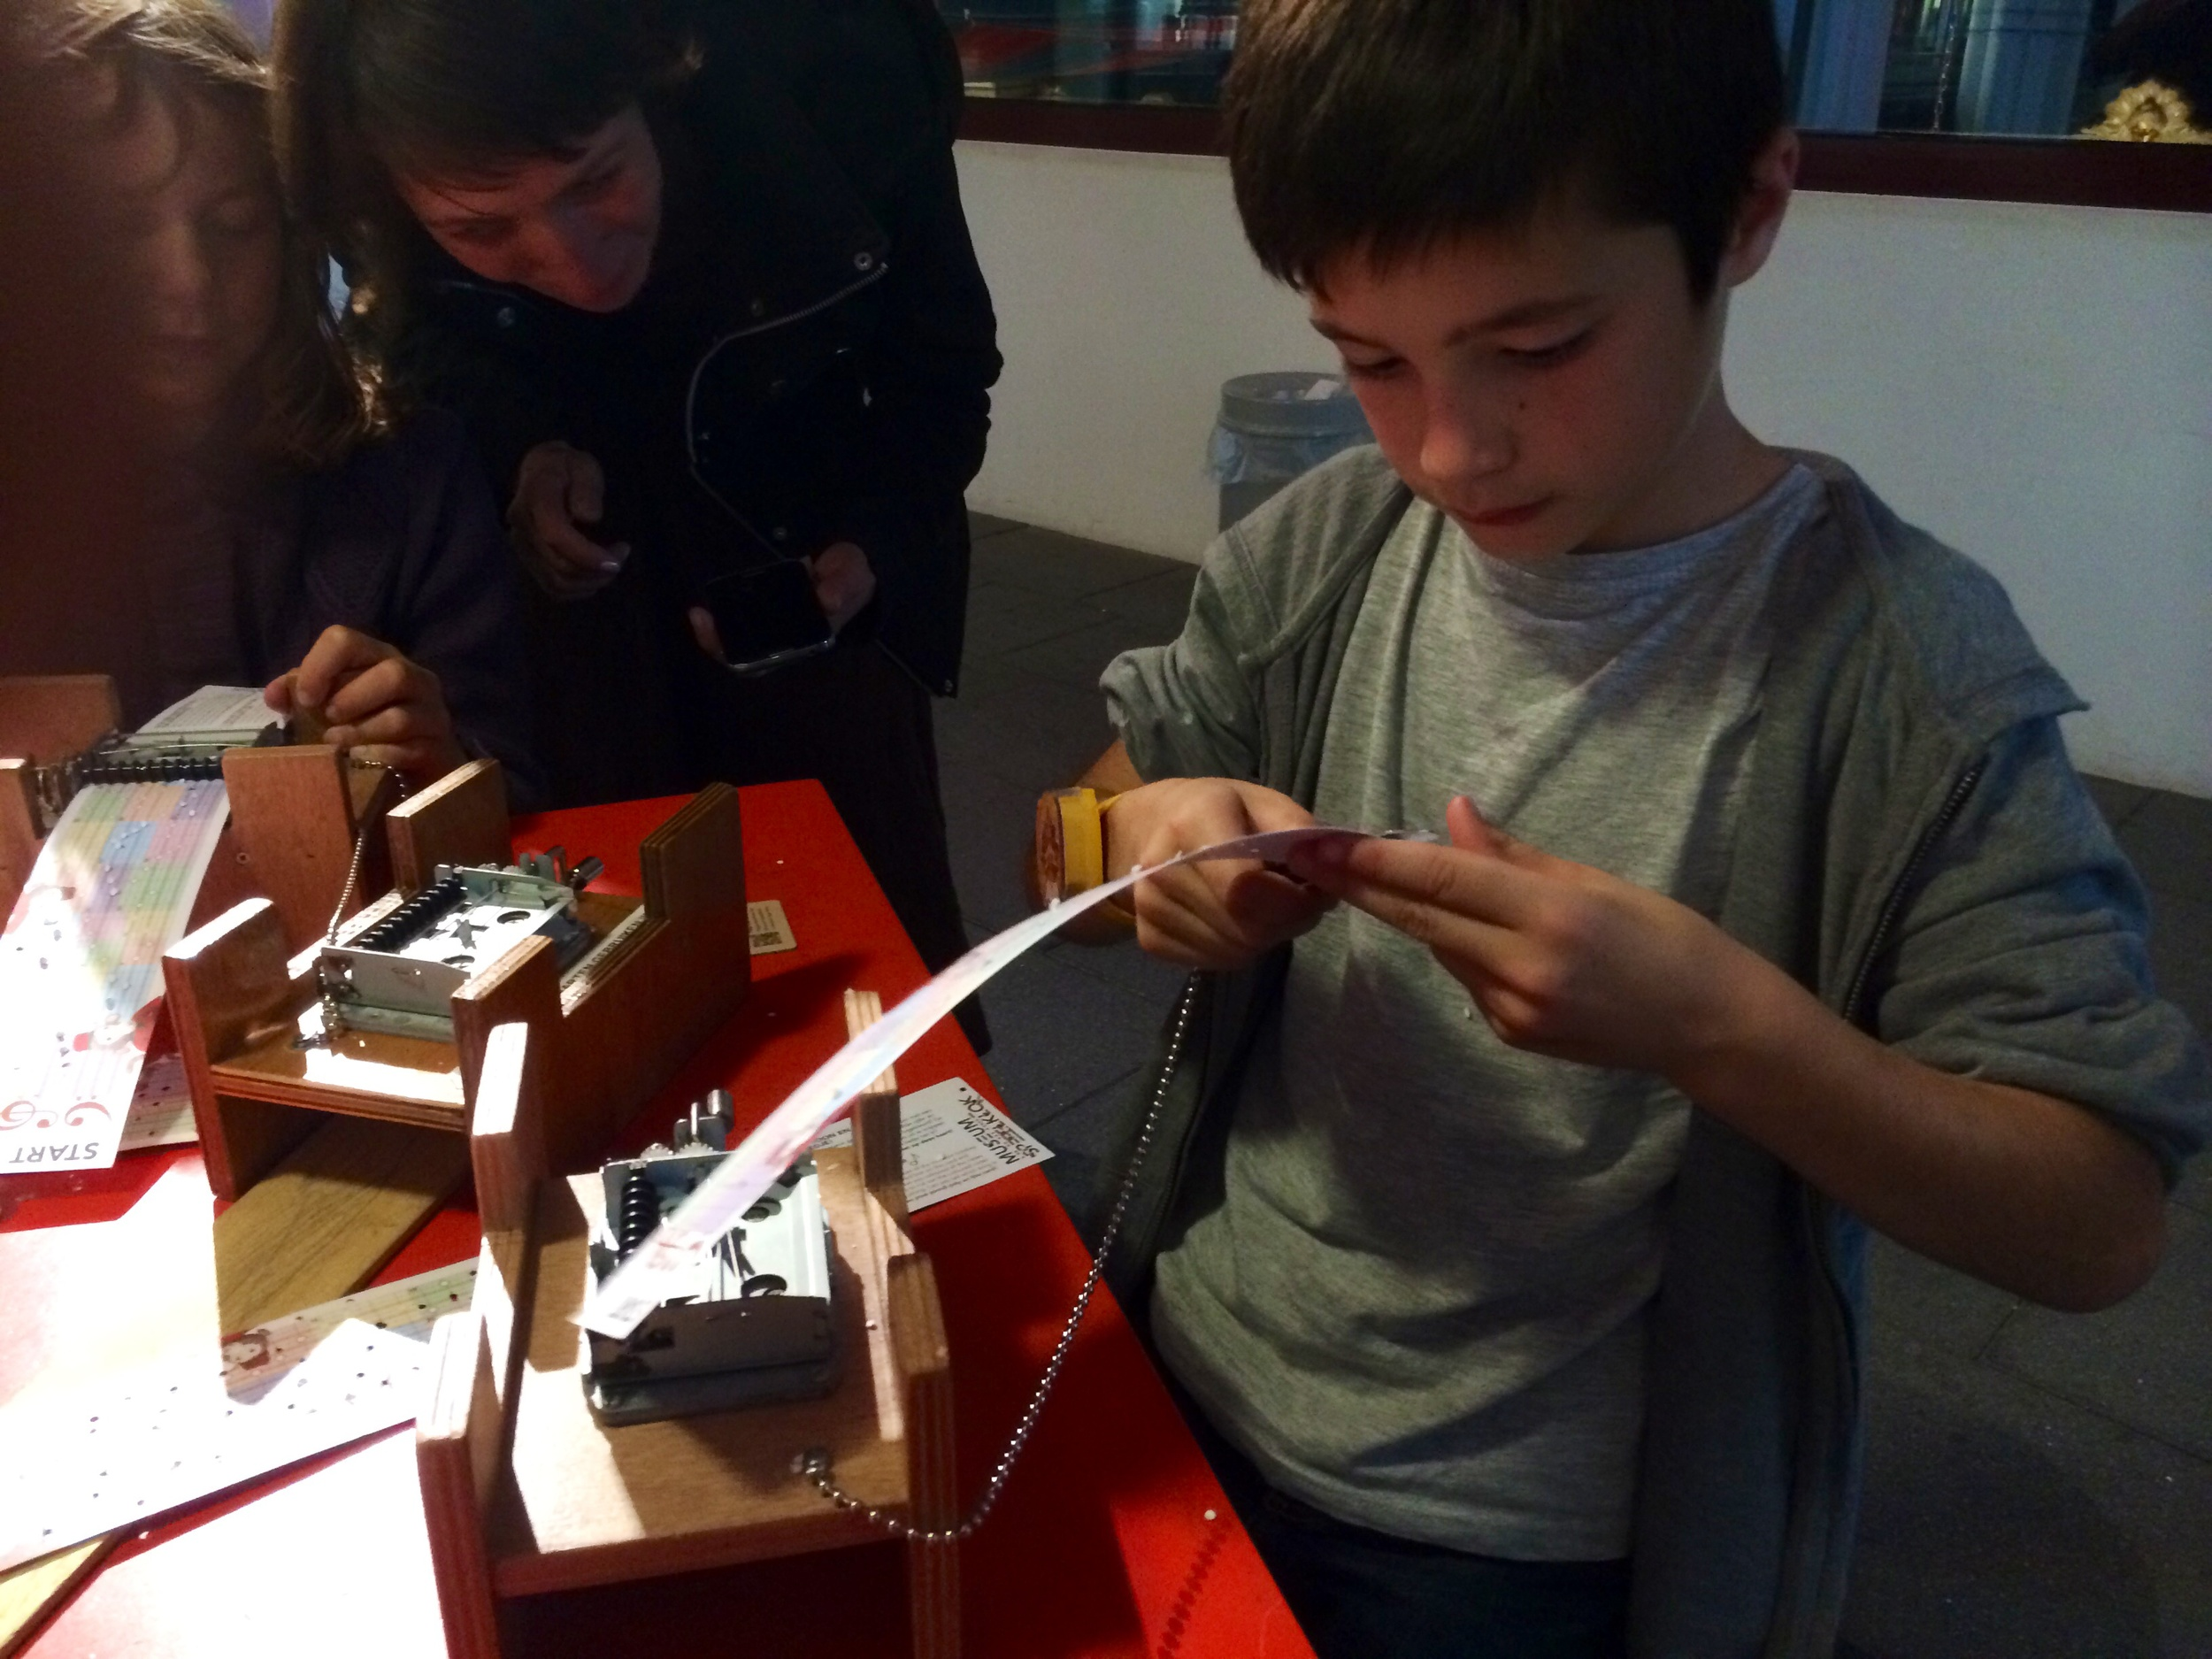 Making music at the music box museum.